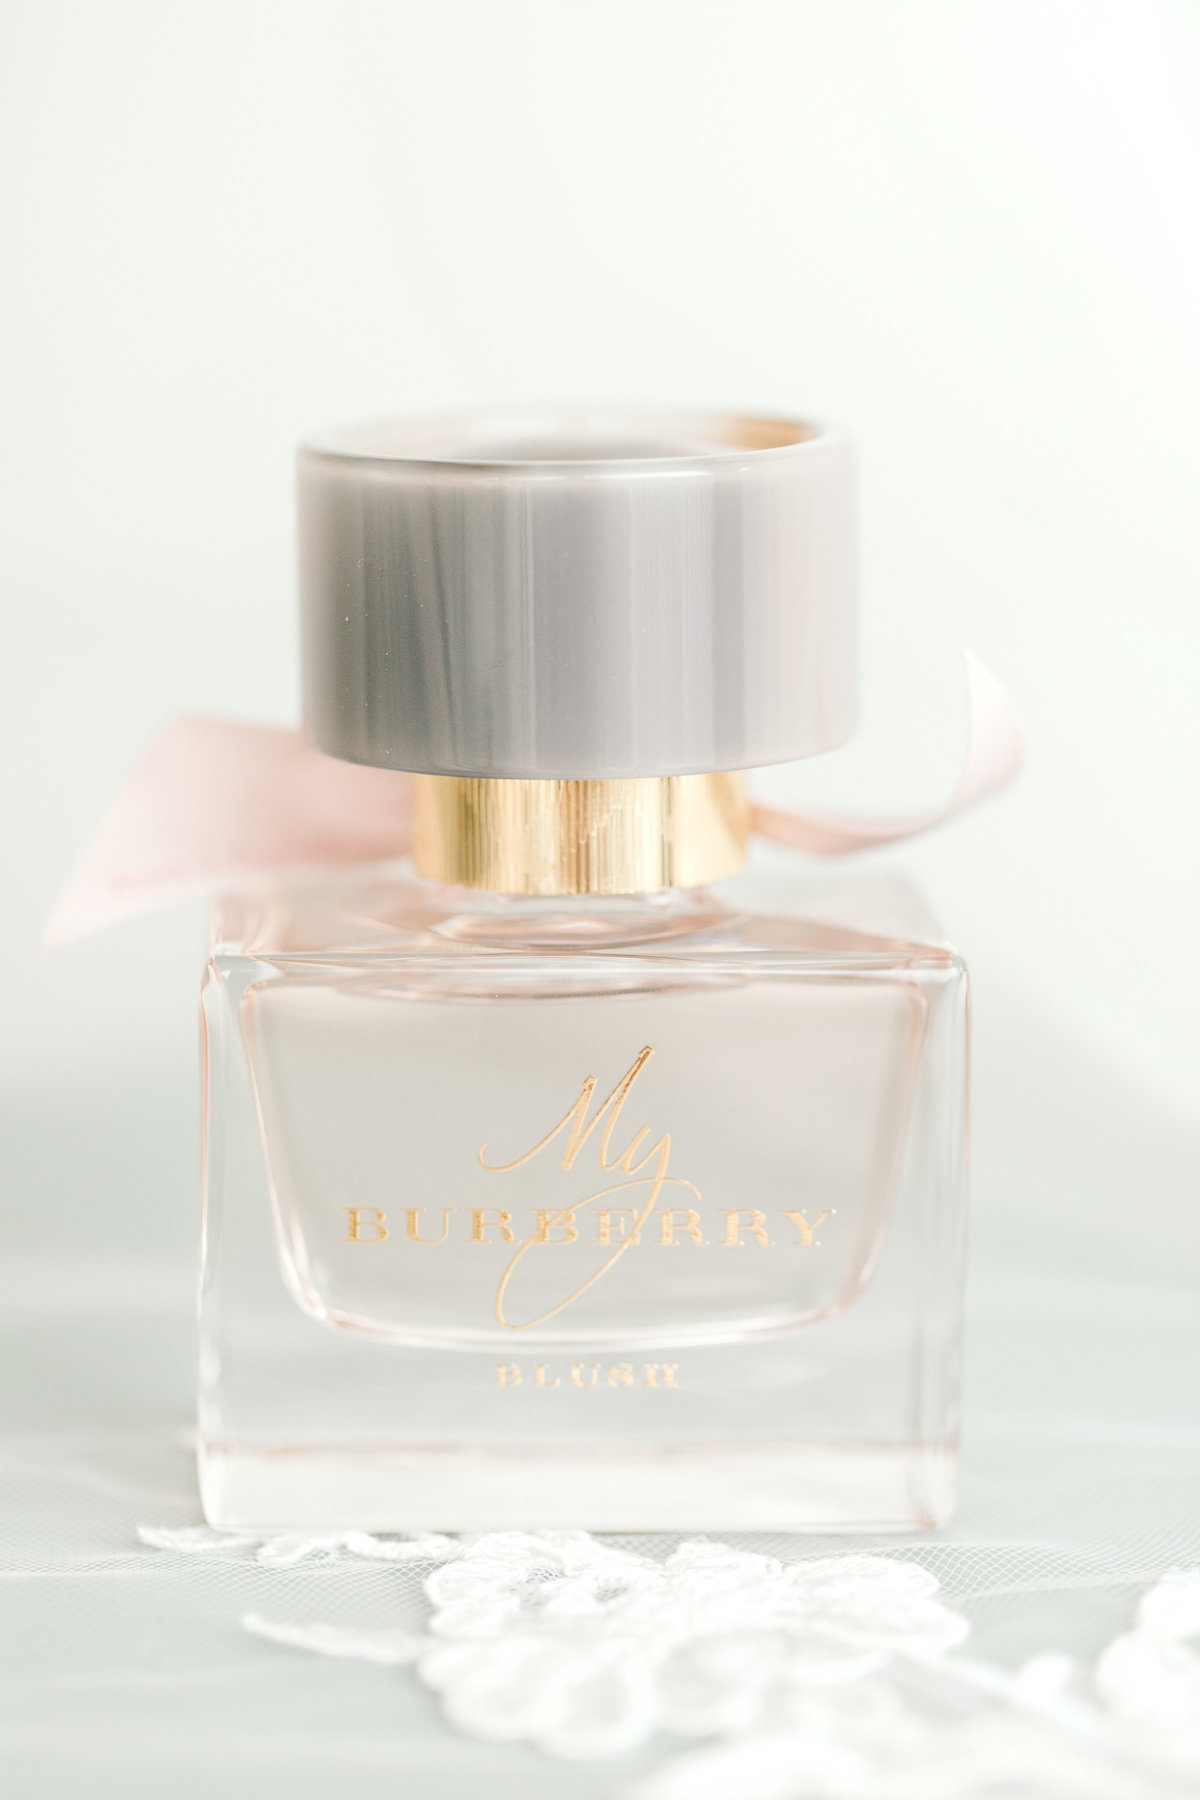 ,y burberry wedding perfume